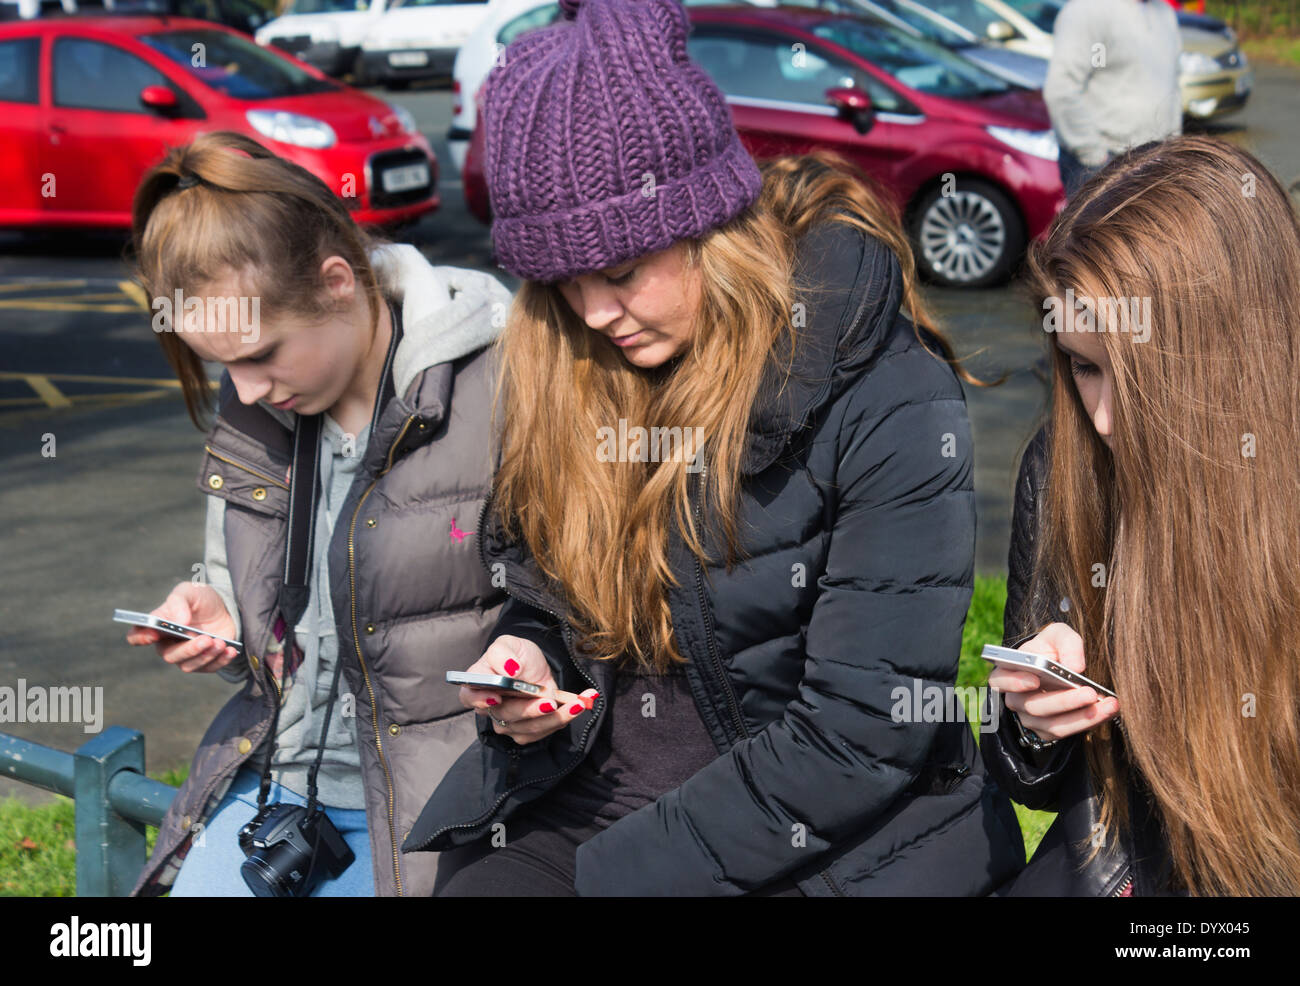 Three girls looking at mobile telephones. - Stock Image